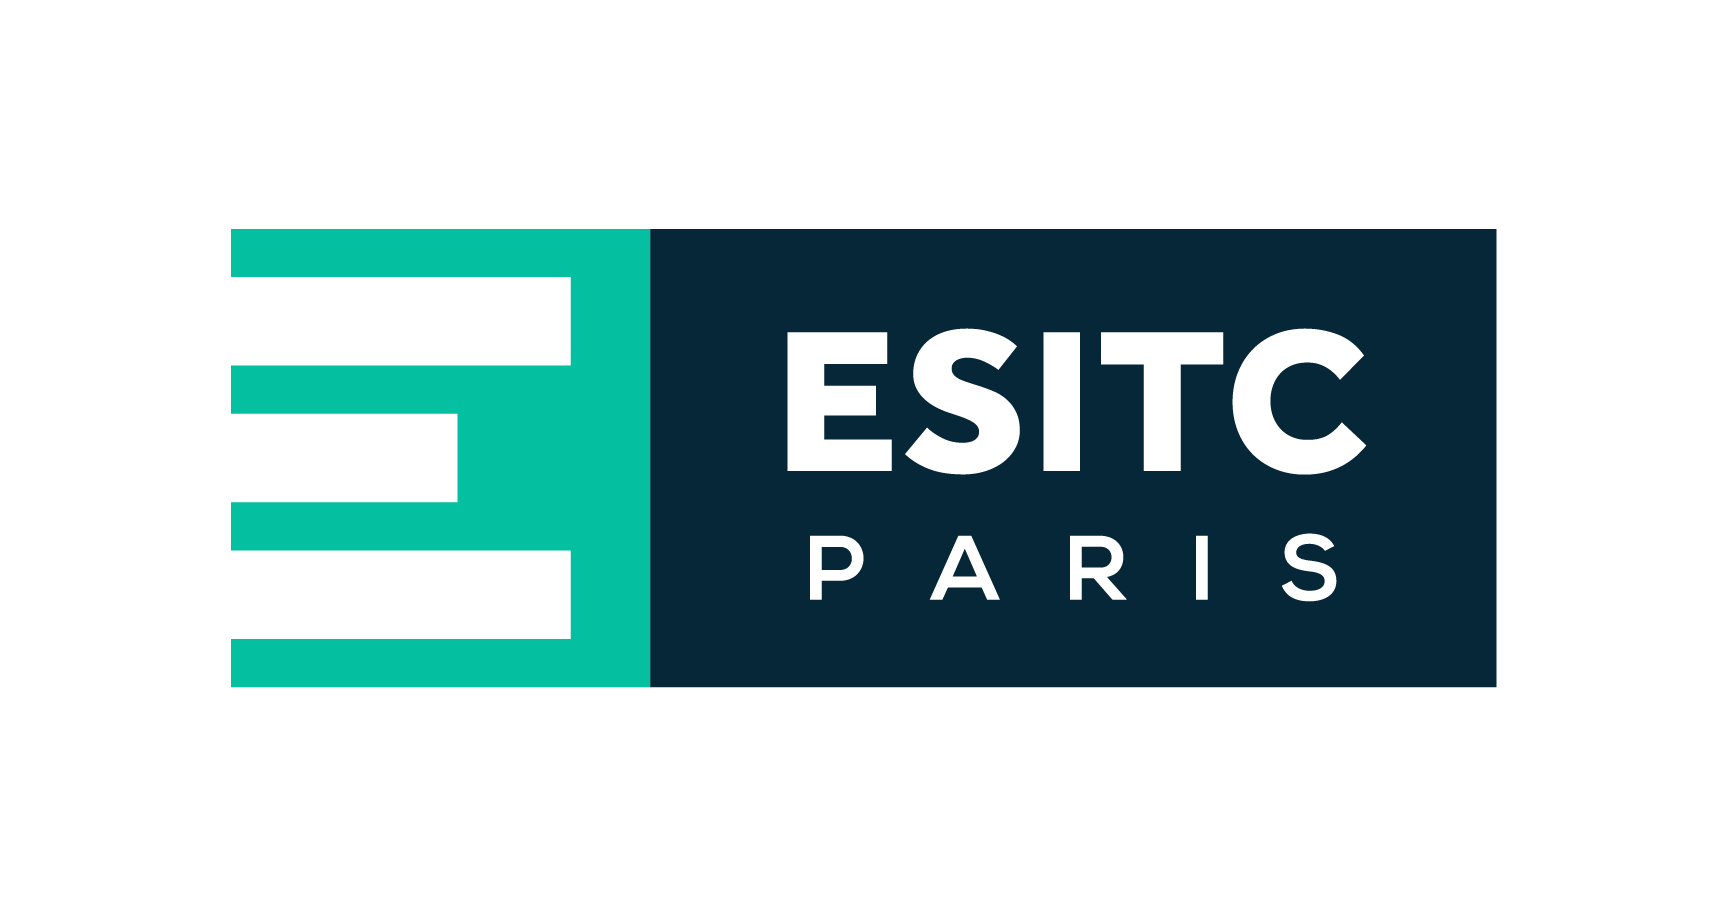 ESITC_logo_simple_couleur_fond_clair